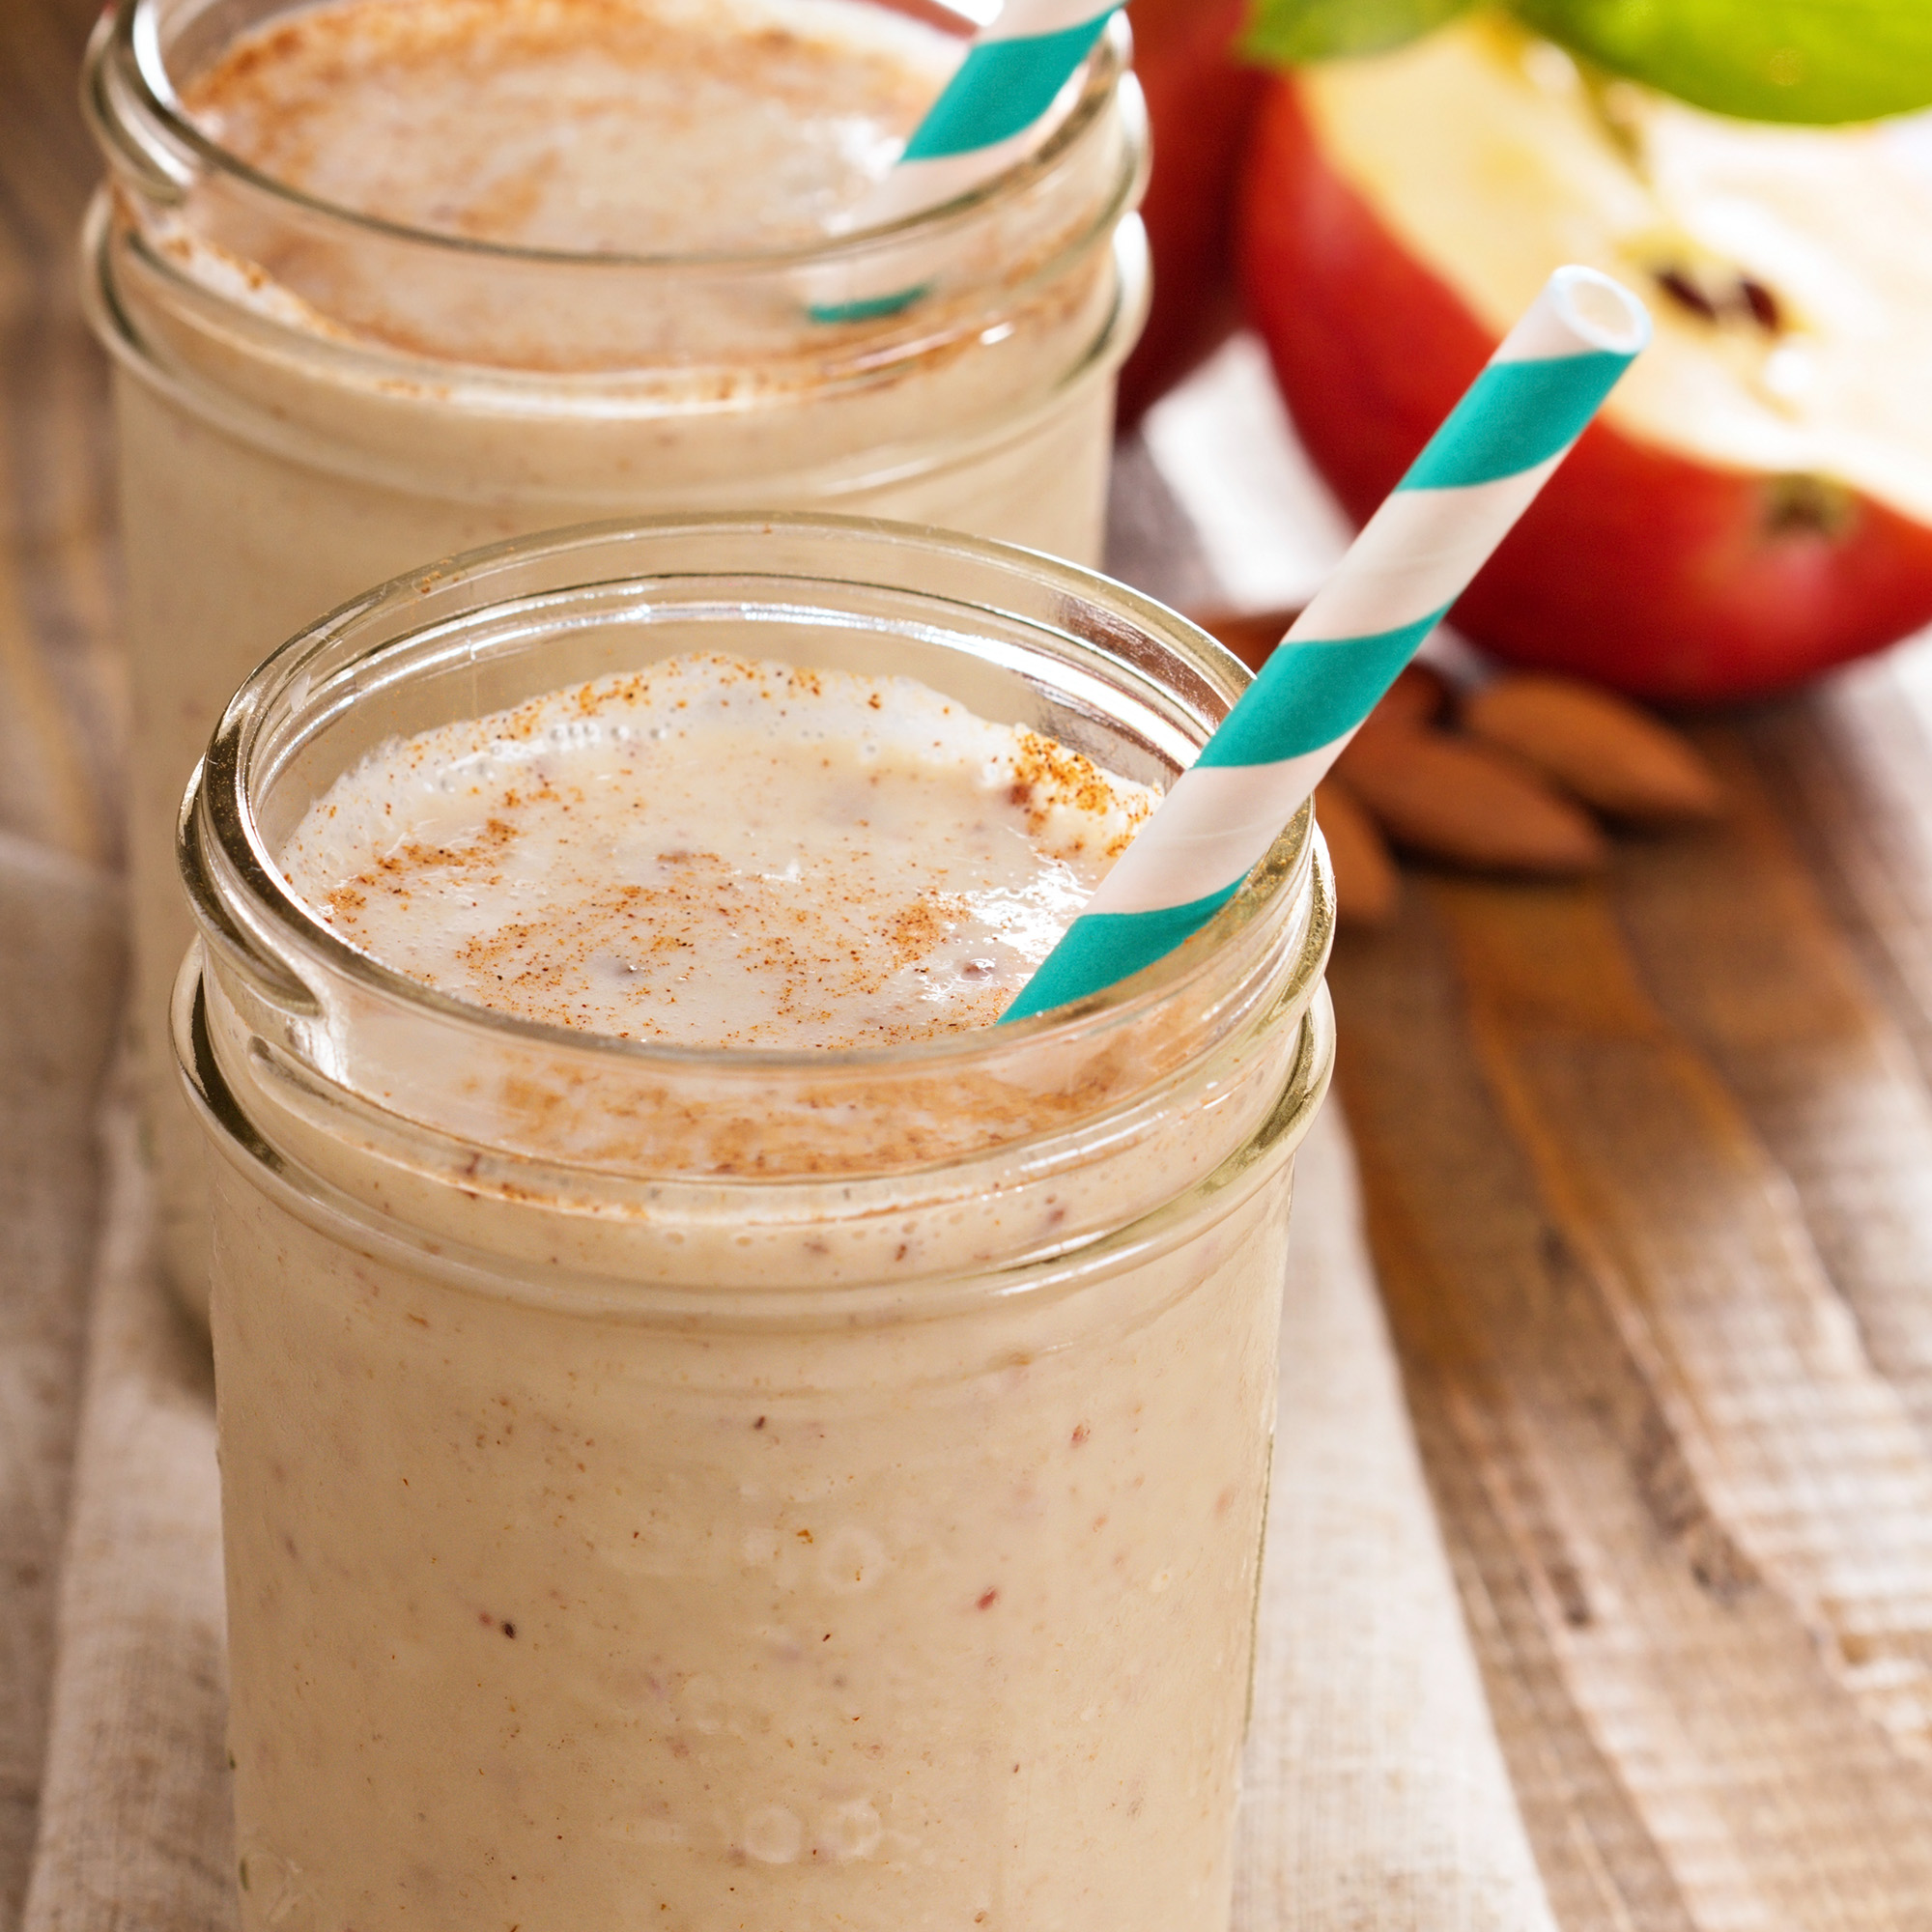 Apple and Cinnamon Nutribullet Smoothie